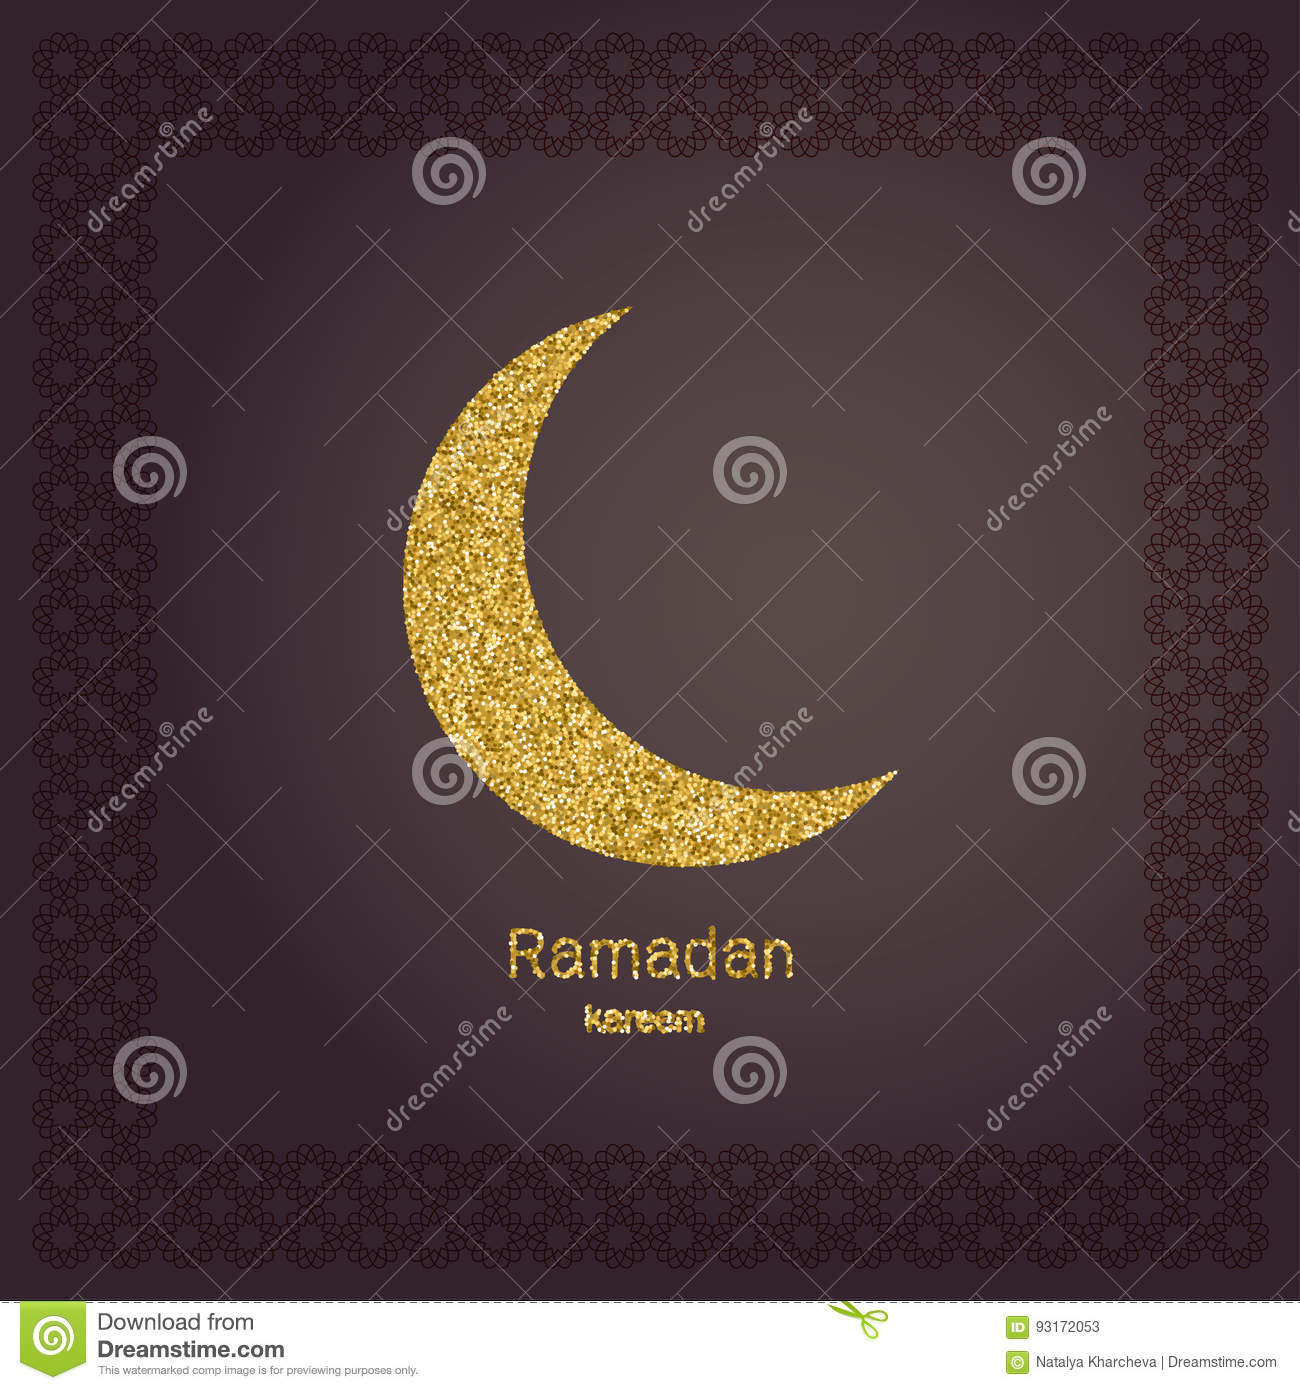 ramadan kerim gold glitter moon template design for greeting card